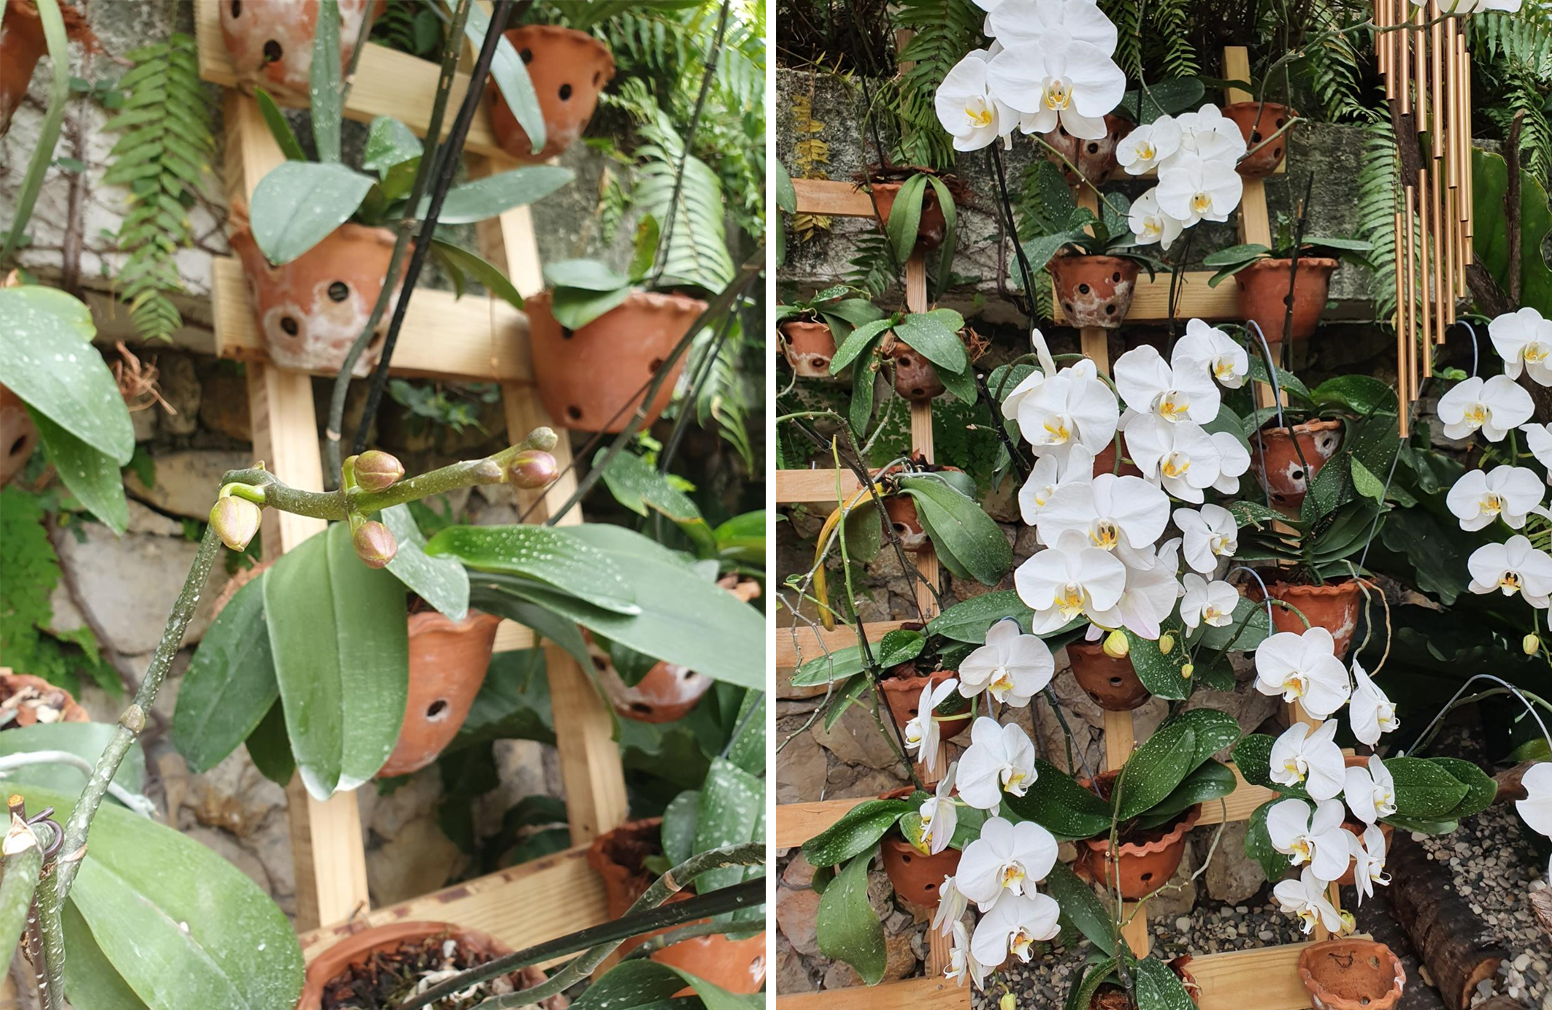 left: reviewer's orchid with many buds right: the buds have now bloomed into a shocking amount of flowers, i think over 20